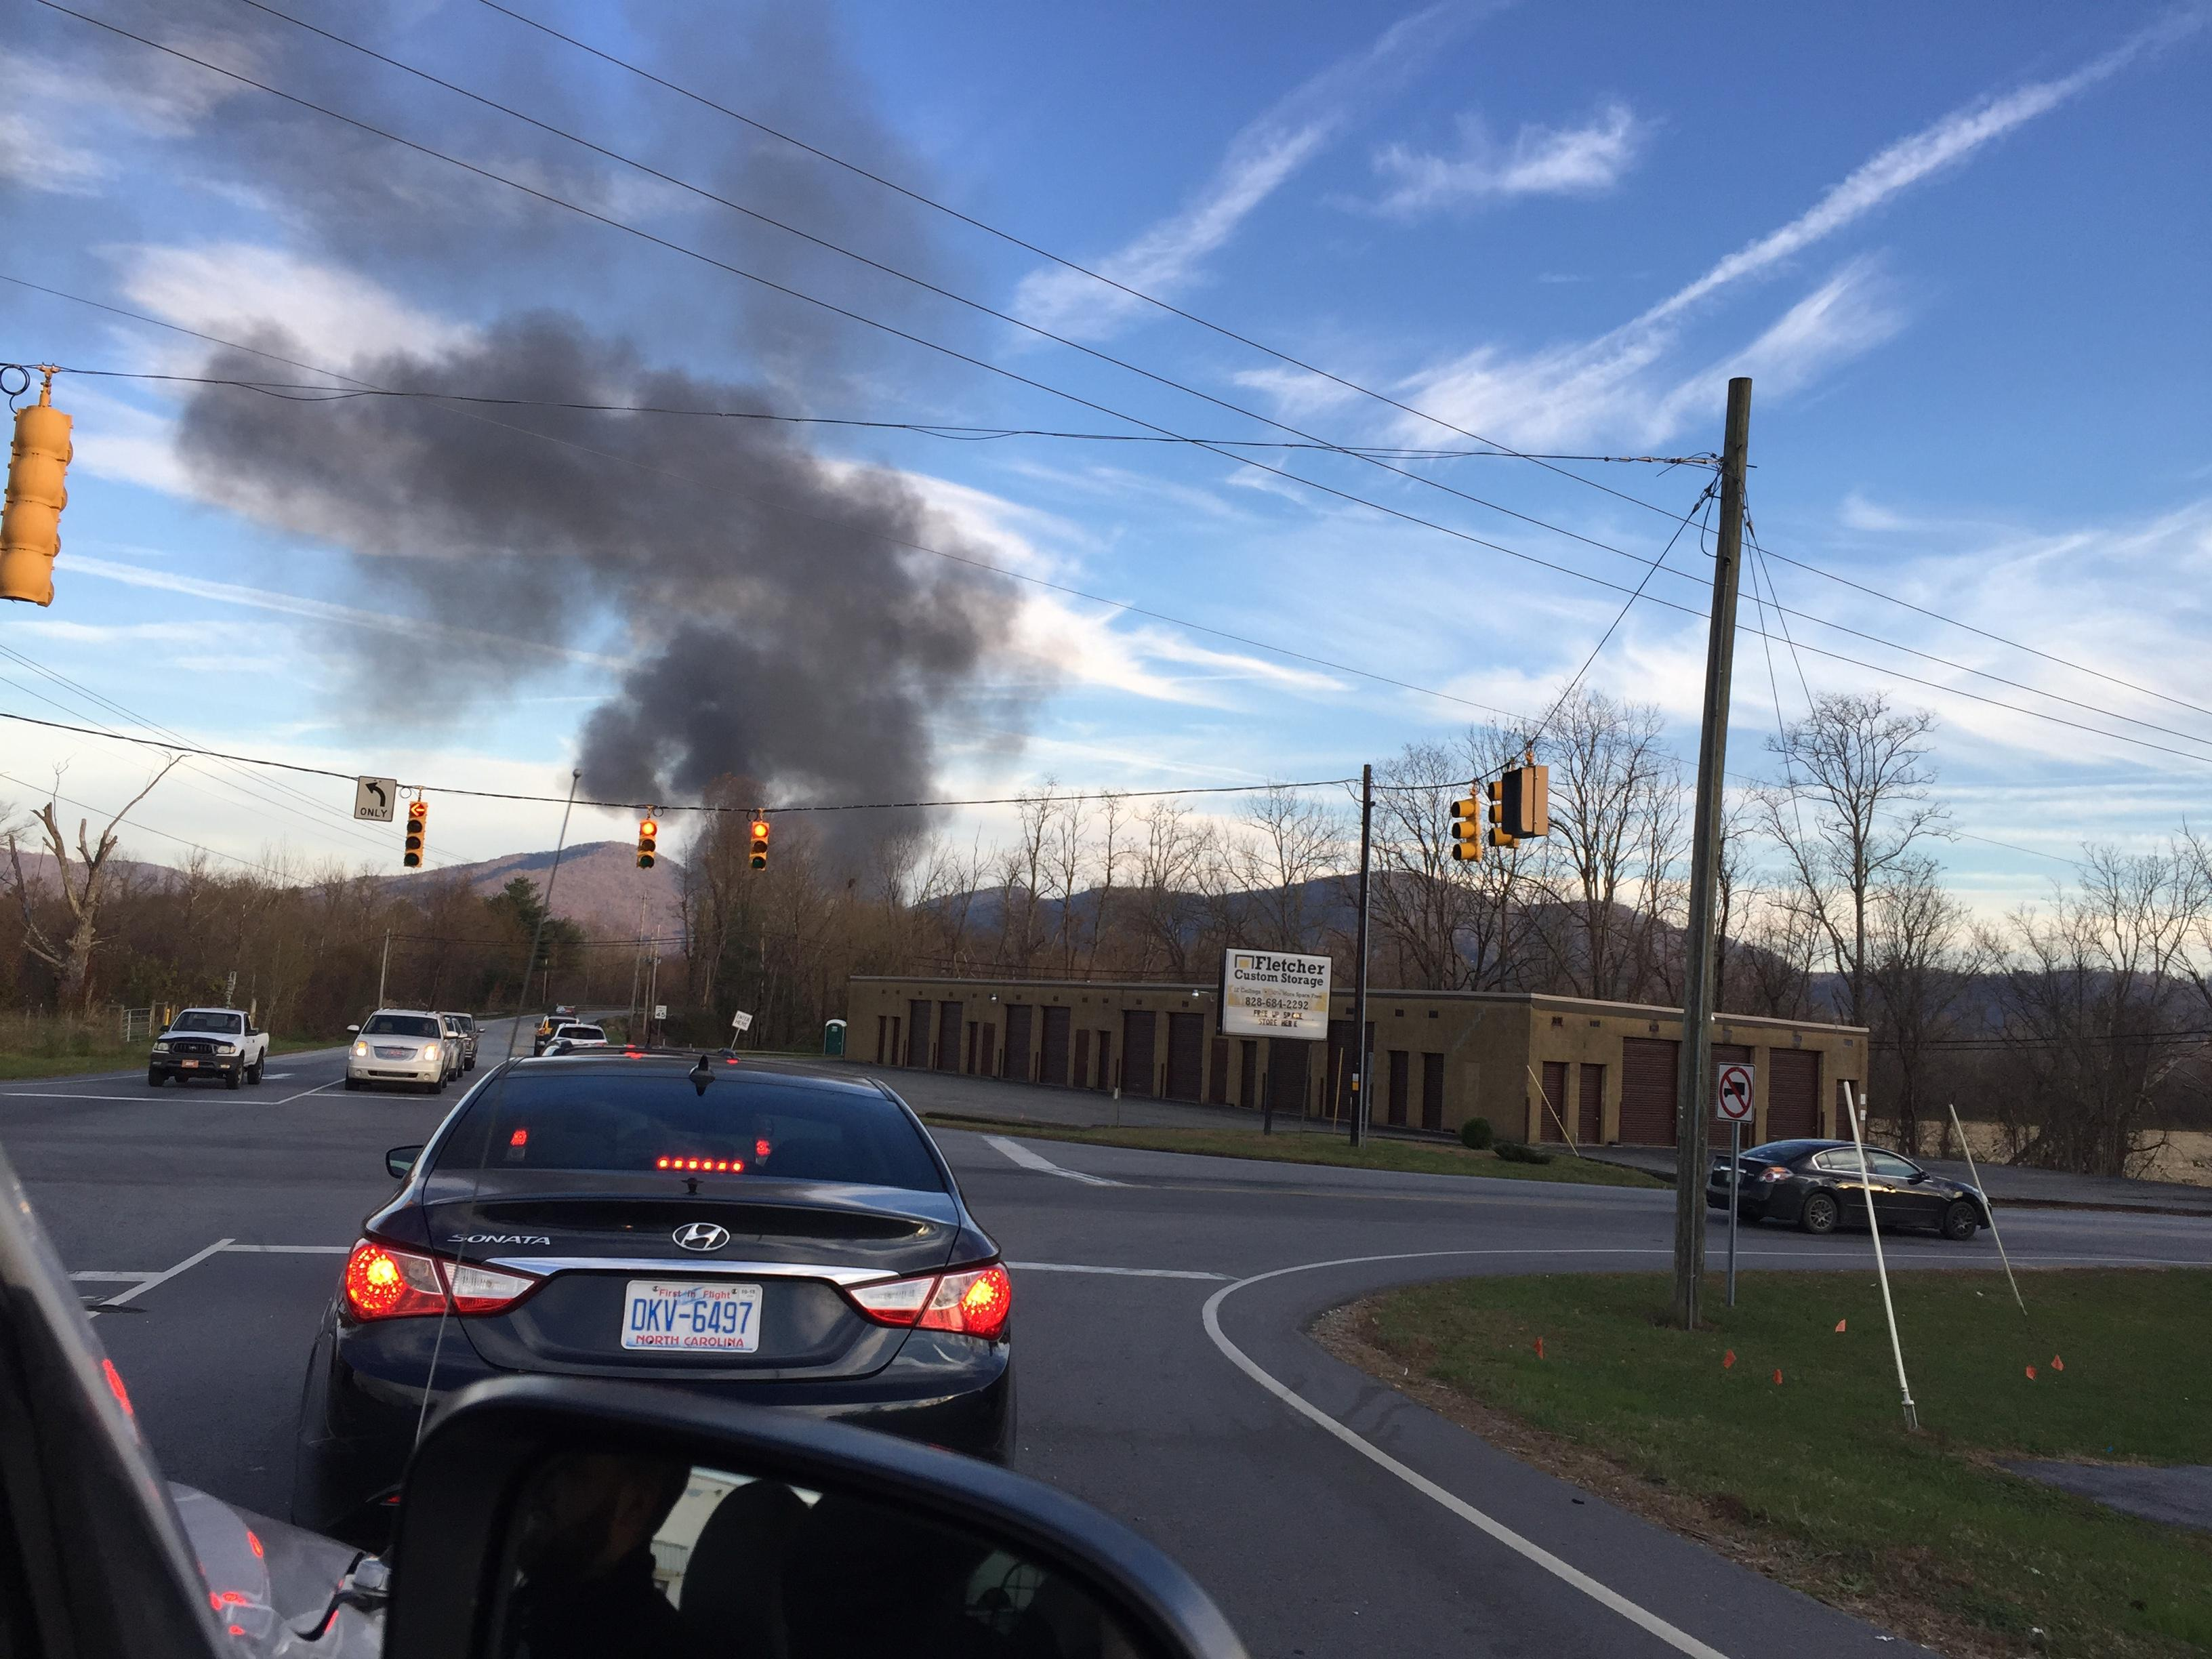 Henderson County emergency officials said the structure fire, reported a little after 4 p.m., was on the 200 block of Mills Gap Road. (Photo credit: WLOS Staff)